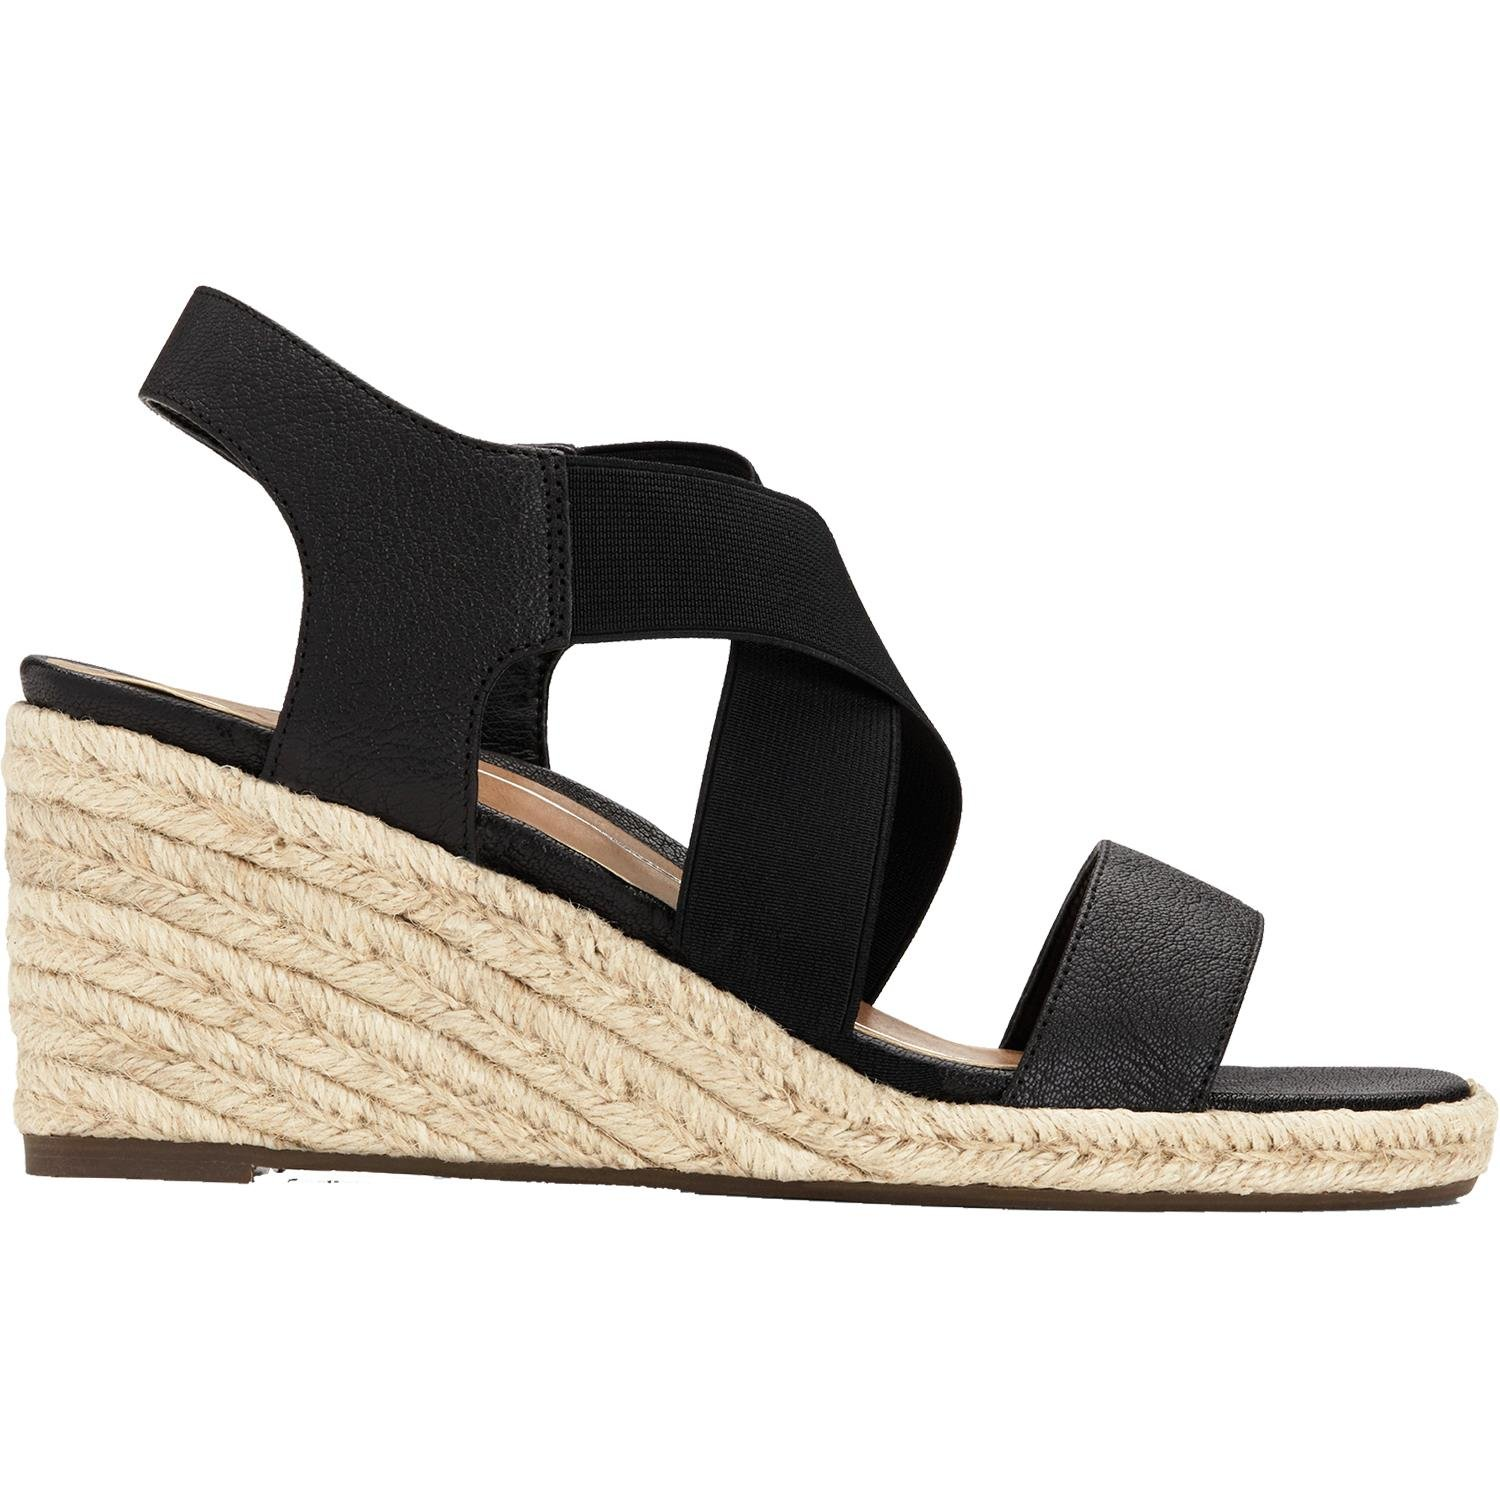 Vionic Tulum Ainsleigh - Womens Wedge Sandal Black - 7 Medium by Vionic